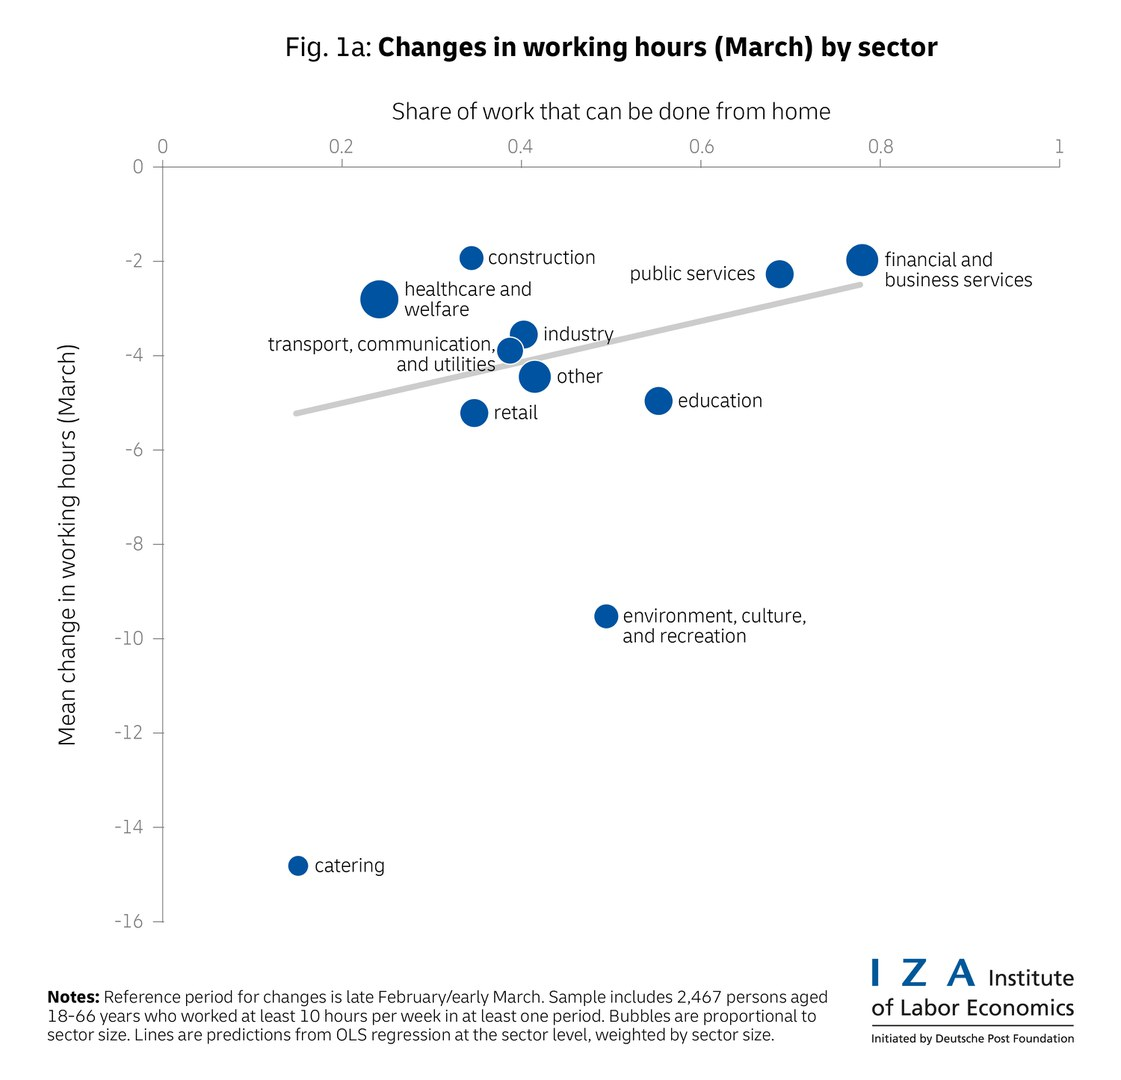 The change in working hours